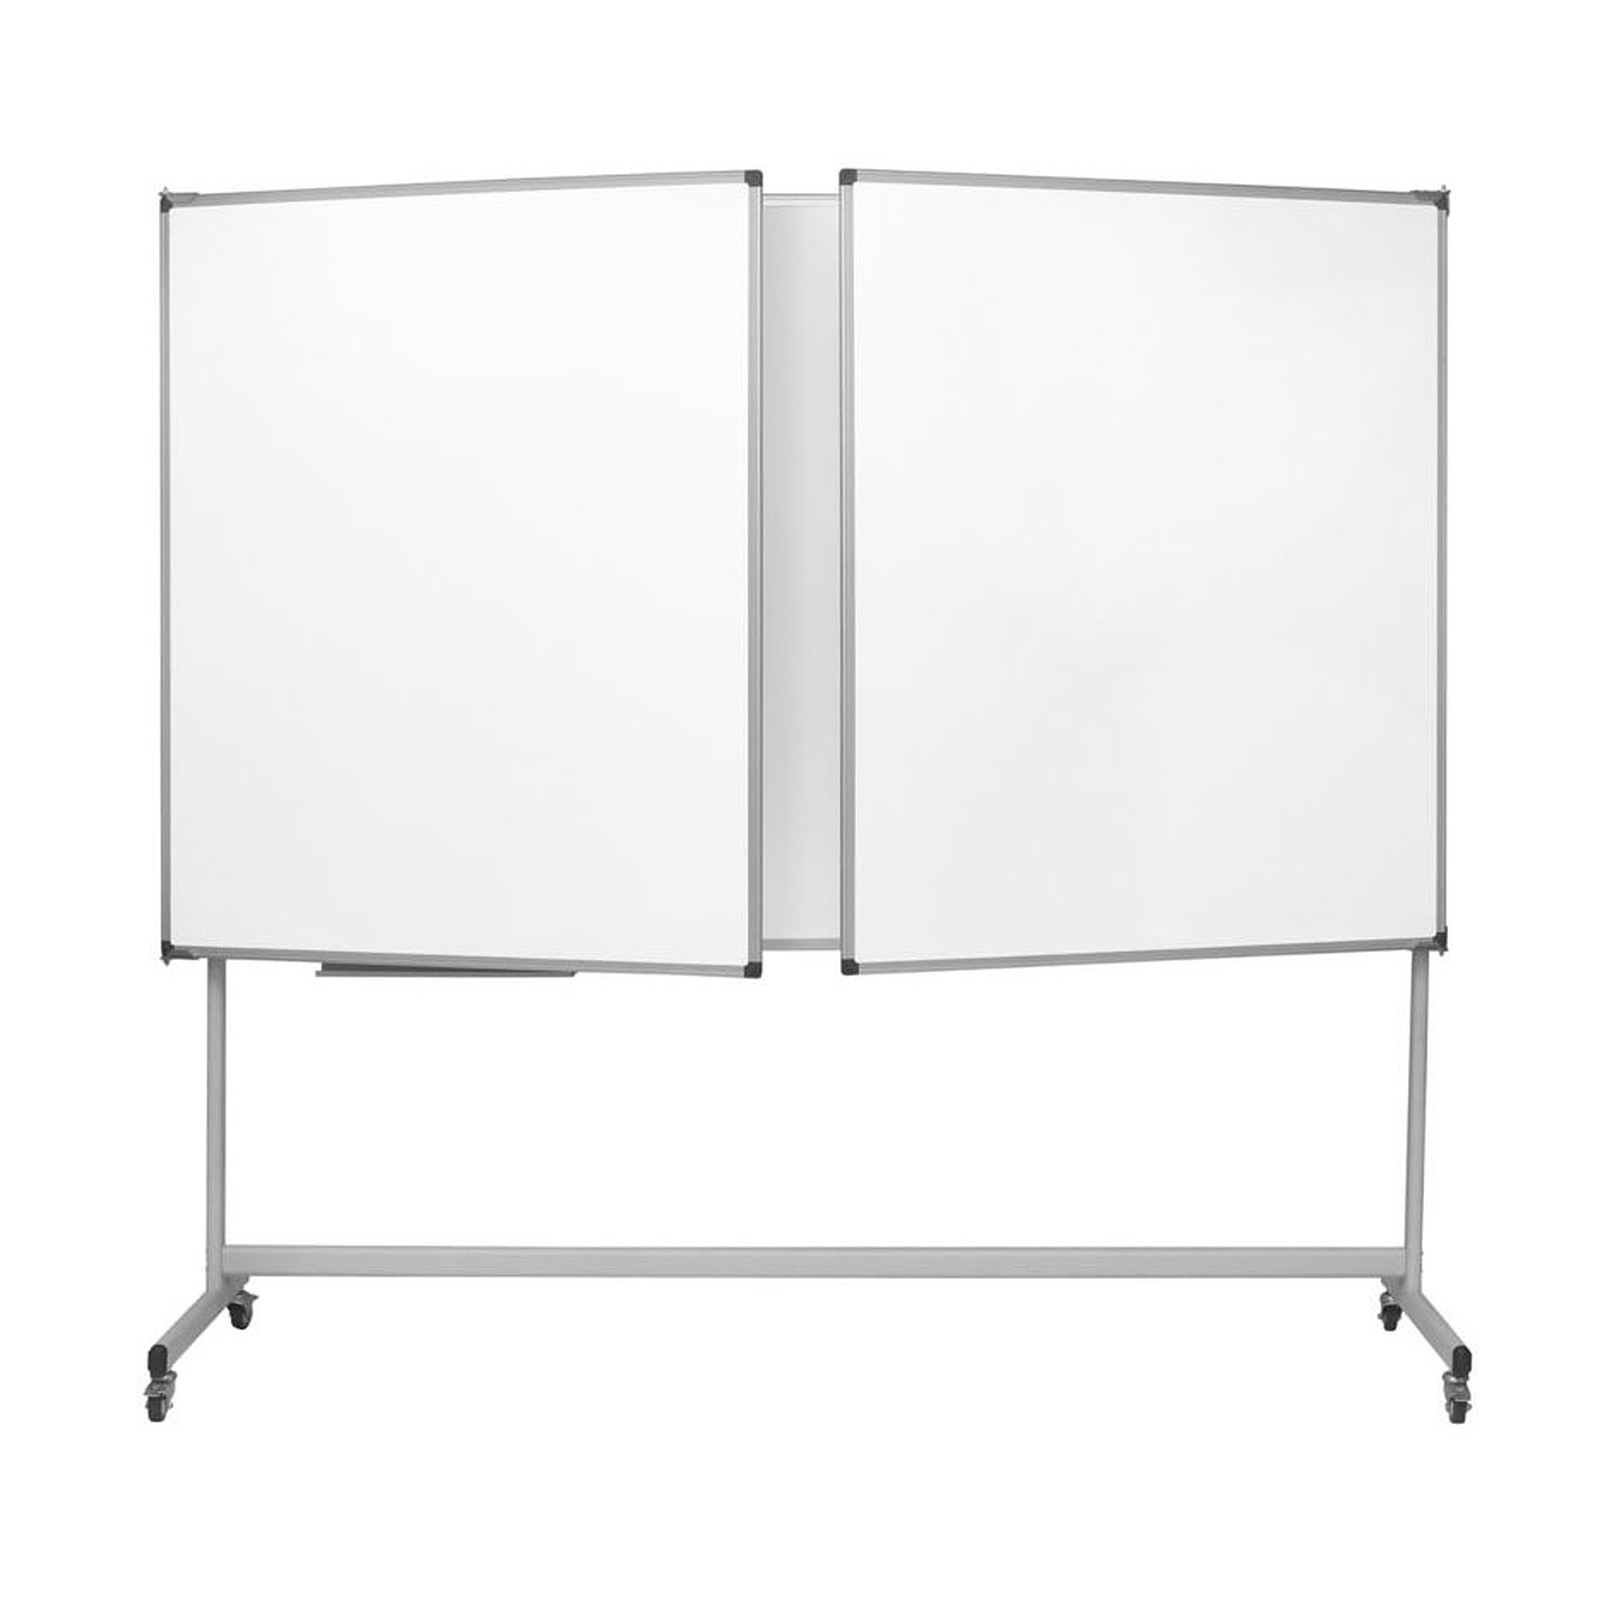 Tableau Blanc Mobile Bi Office Blanc Triptyque Mobile Industriel Maya 100 X 150 300 Cm